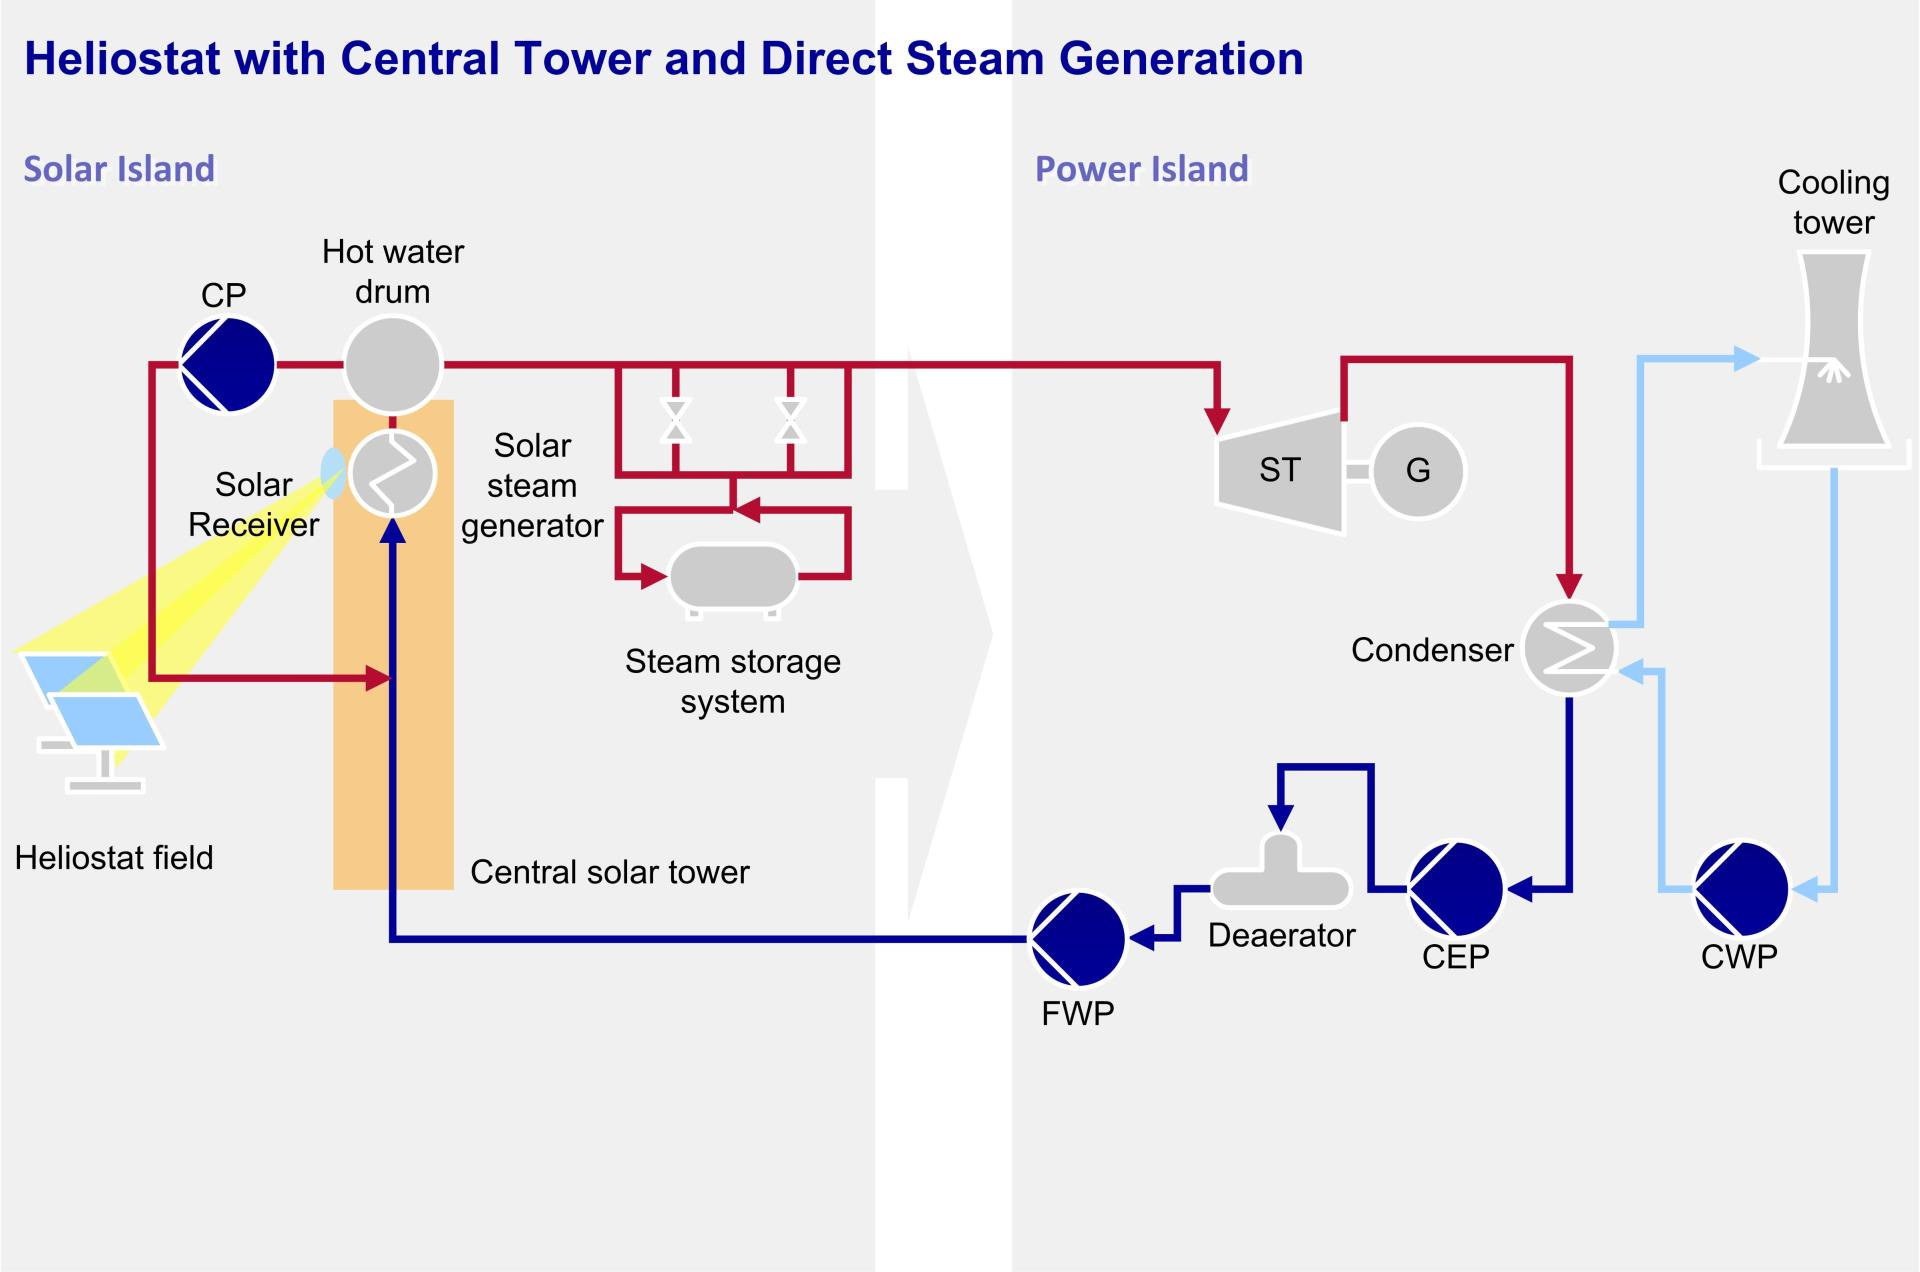 Heliostat with Central Tower and Direct Steam Generation